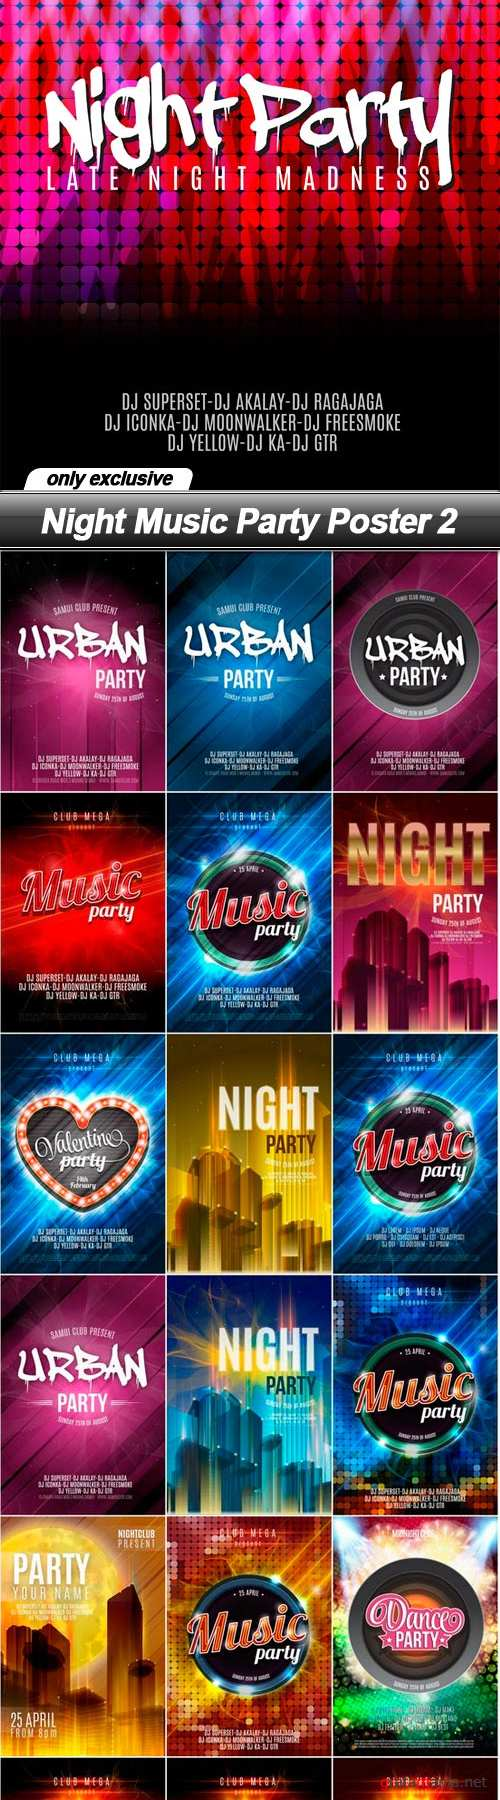 Night Music Party Poster 2 - 19 EPS